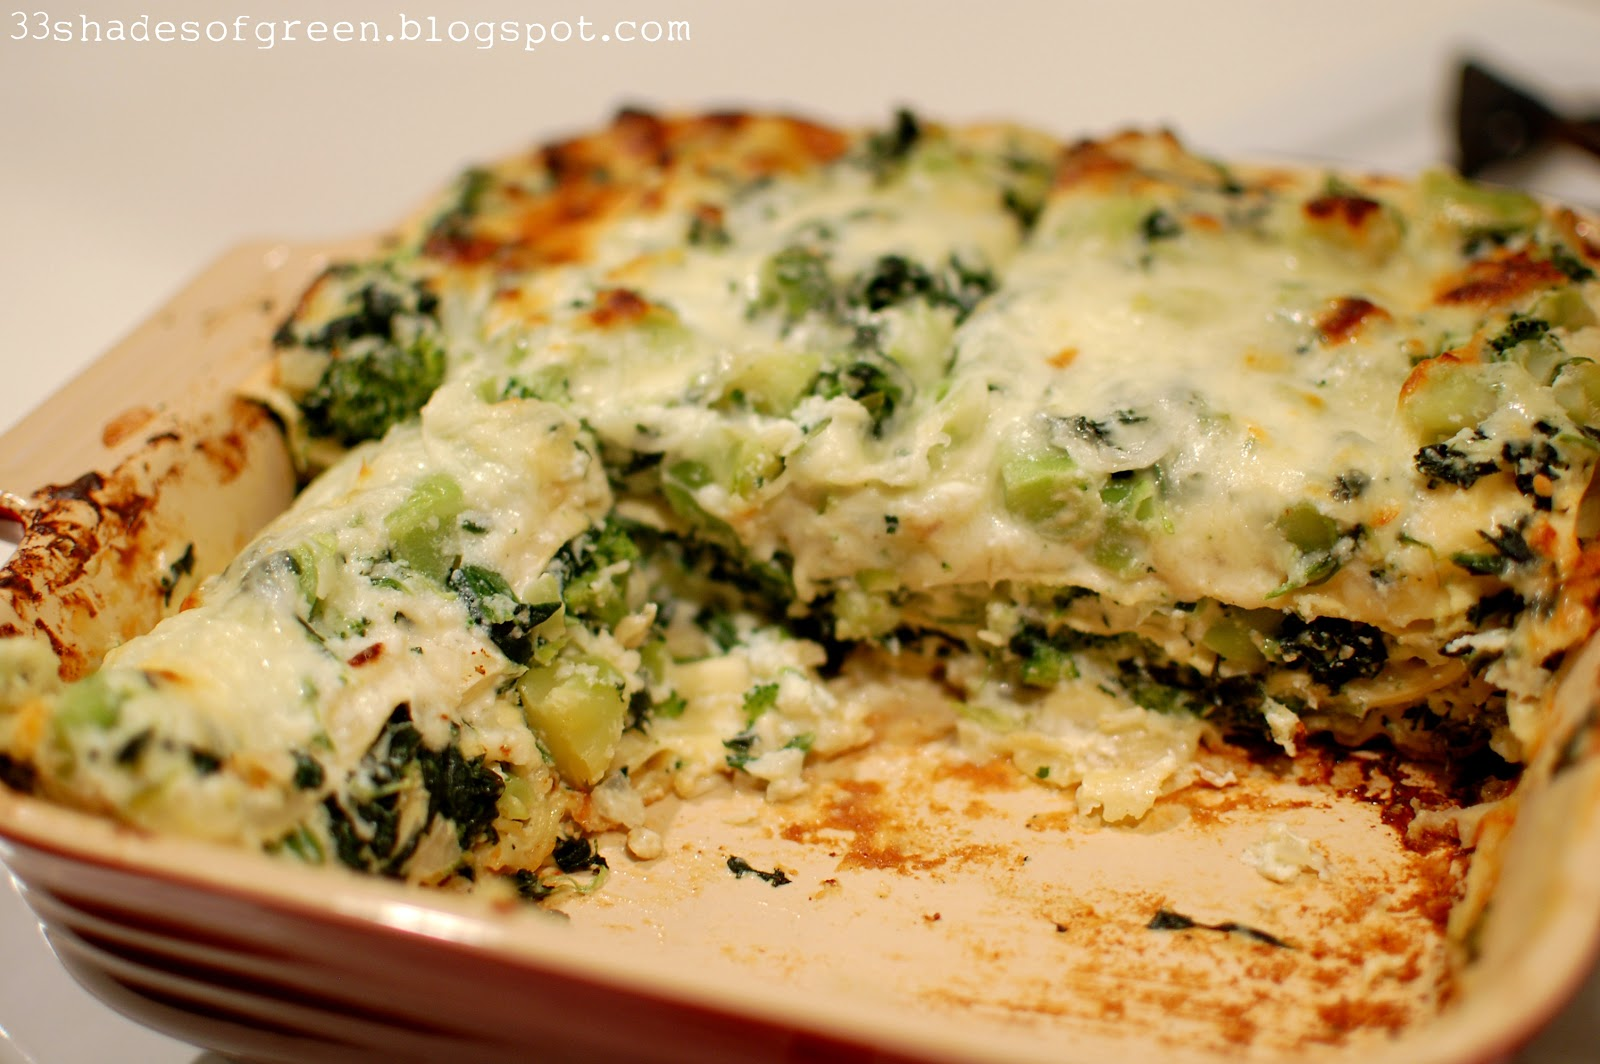 33 shades of green tasty tuesdays spinach broccoli lasagna. Black Bedroom Furniture Sets. Home Design Ideas